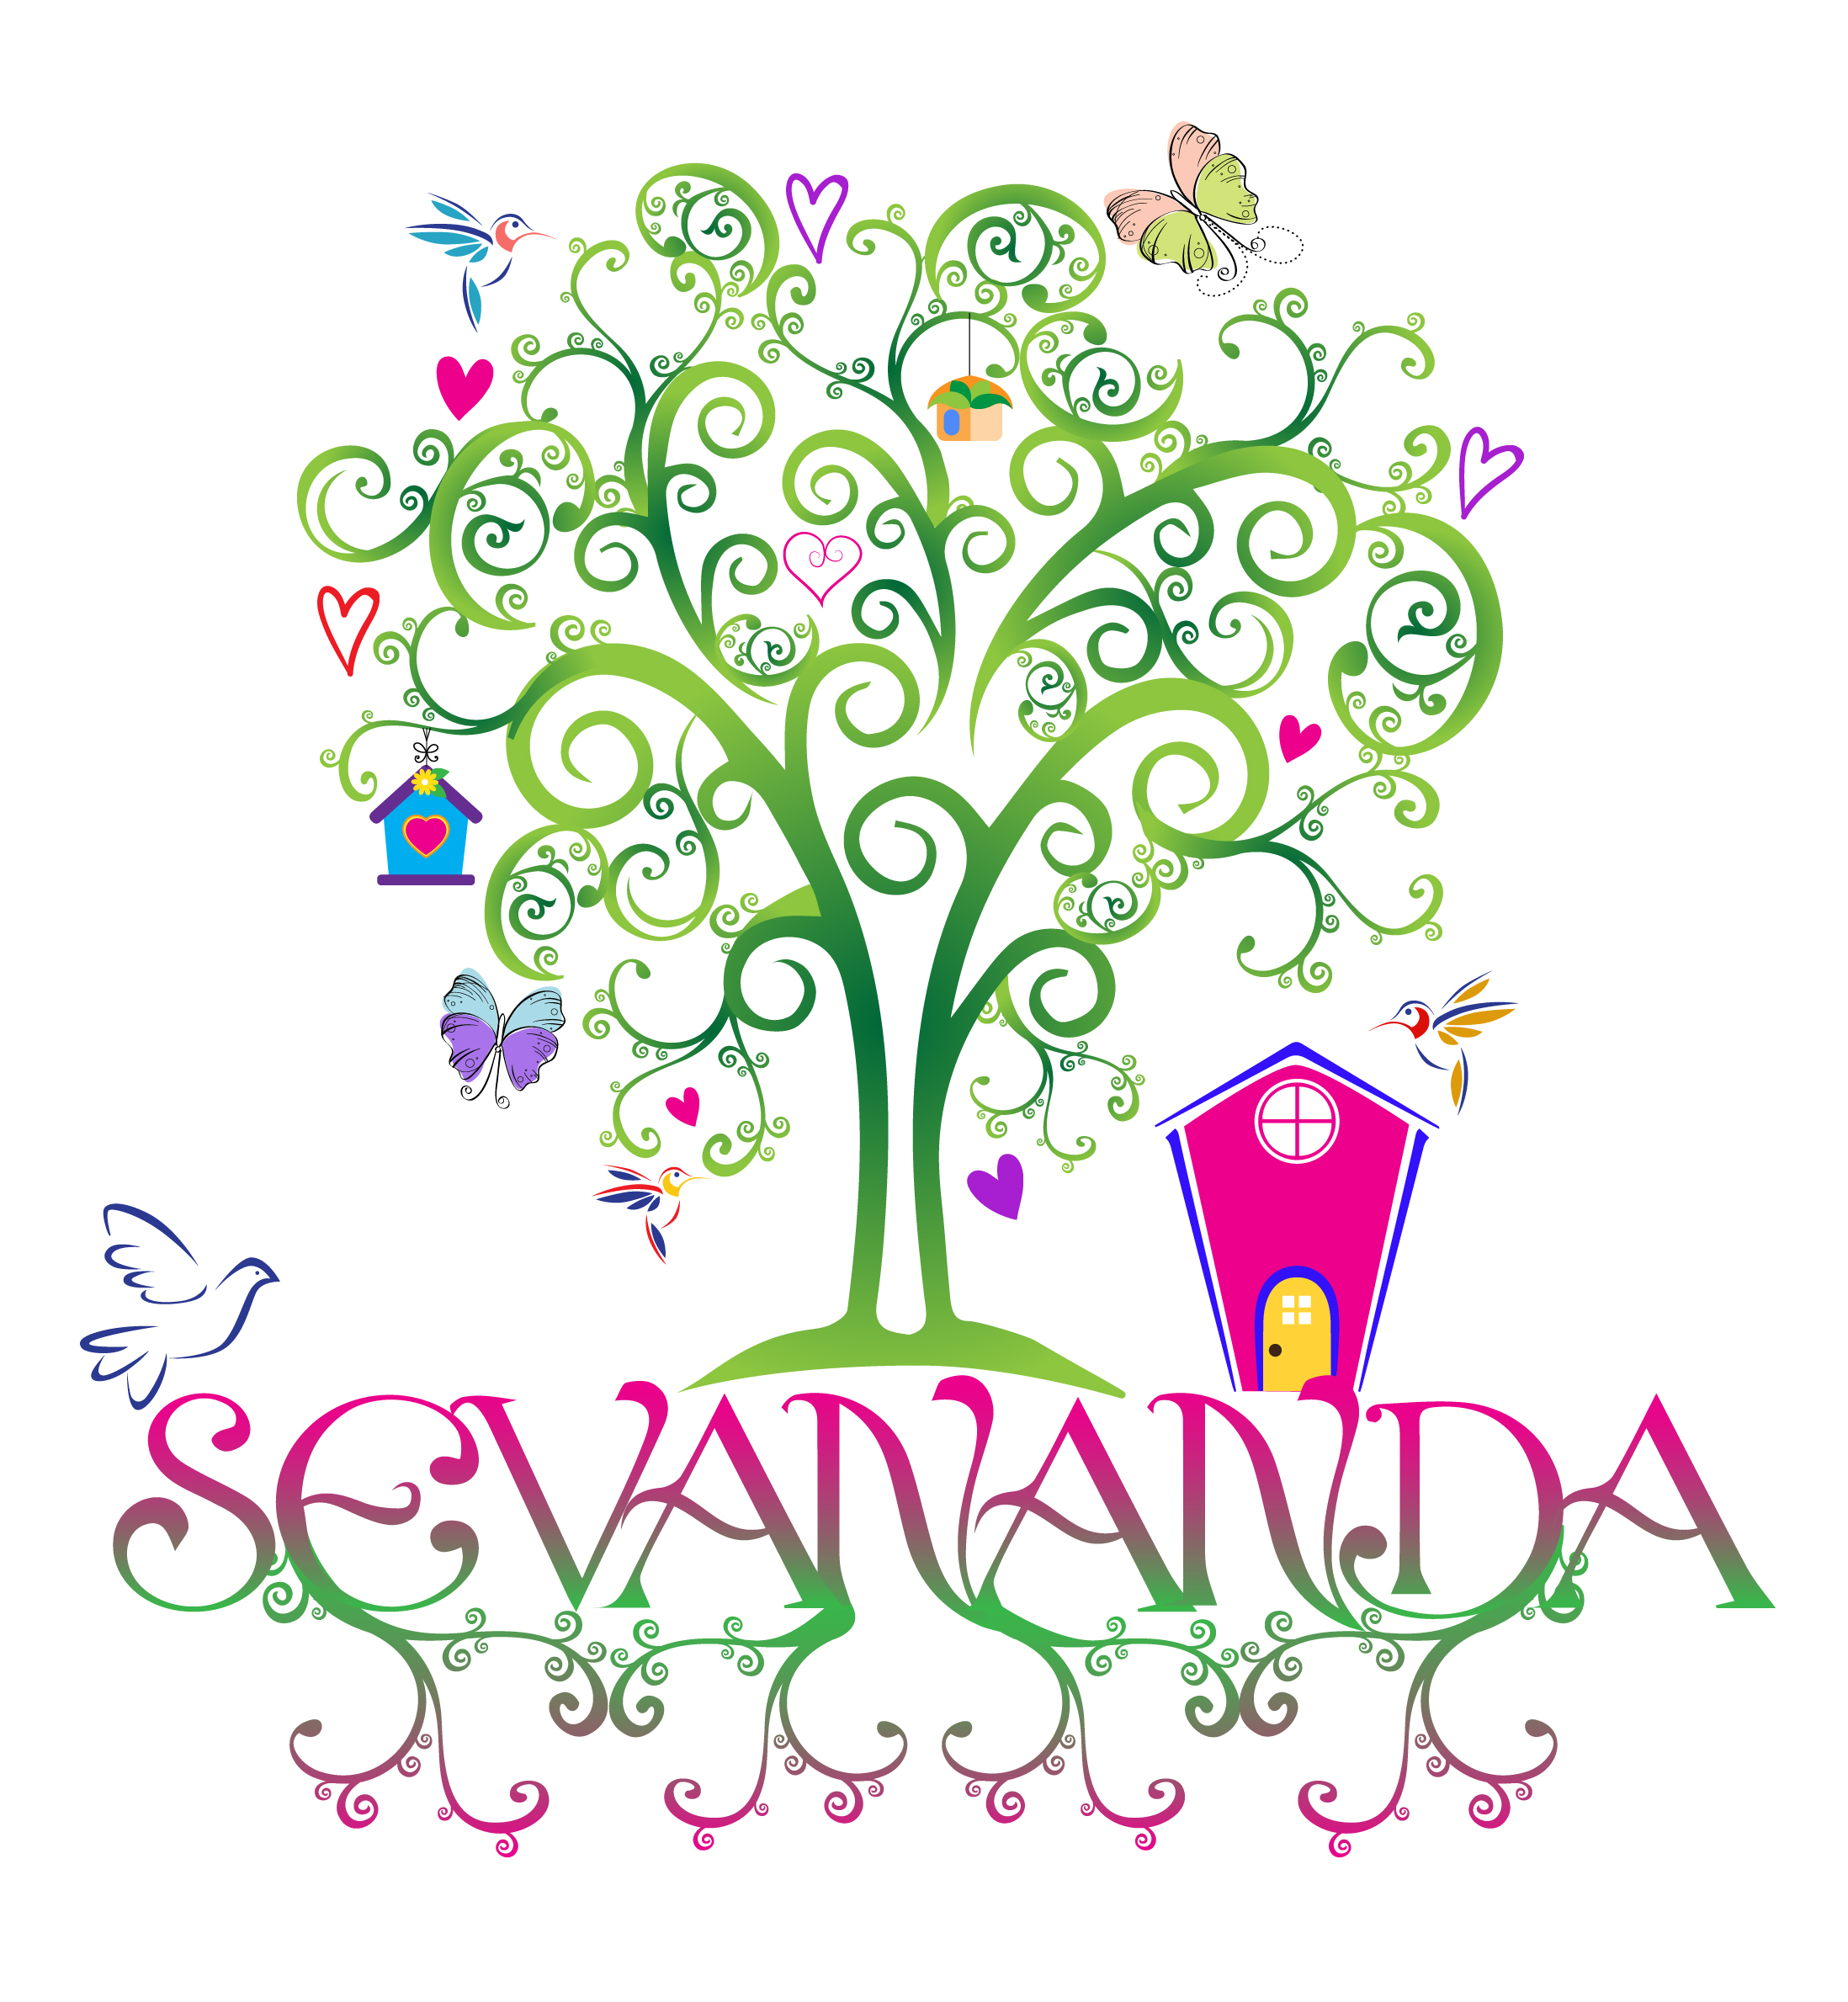 Sevanada-logo-final-color-02-01.jpg